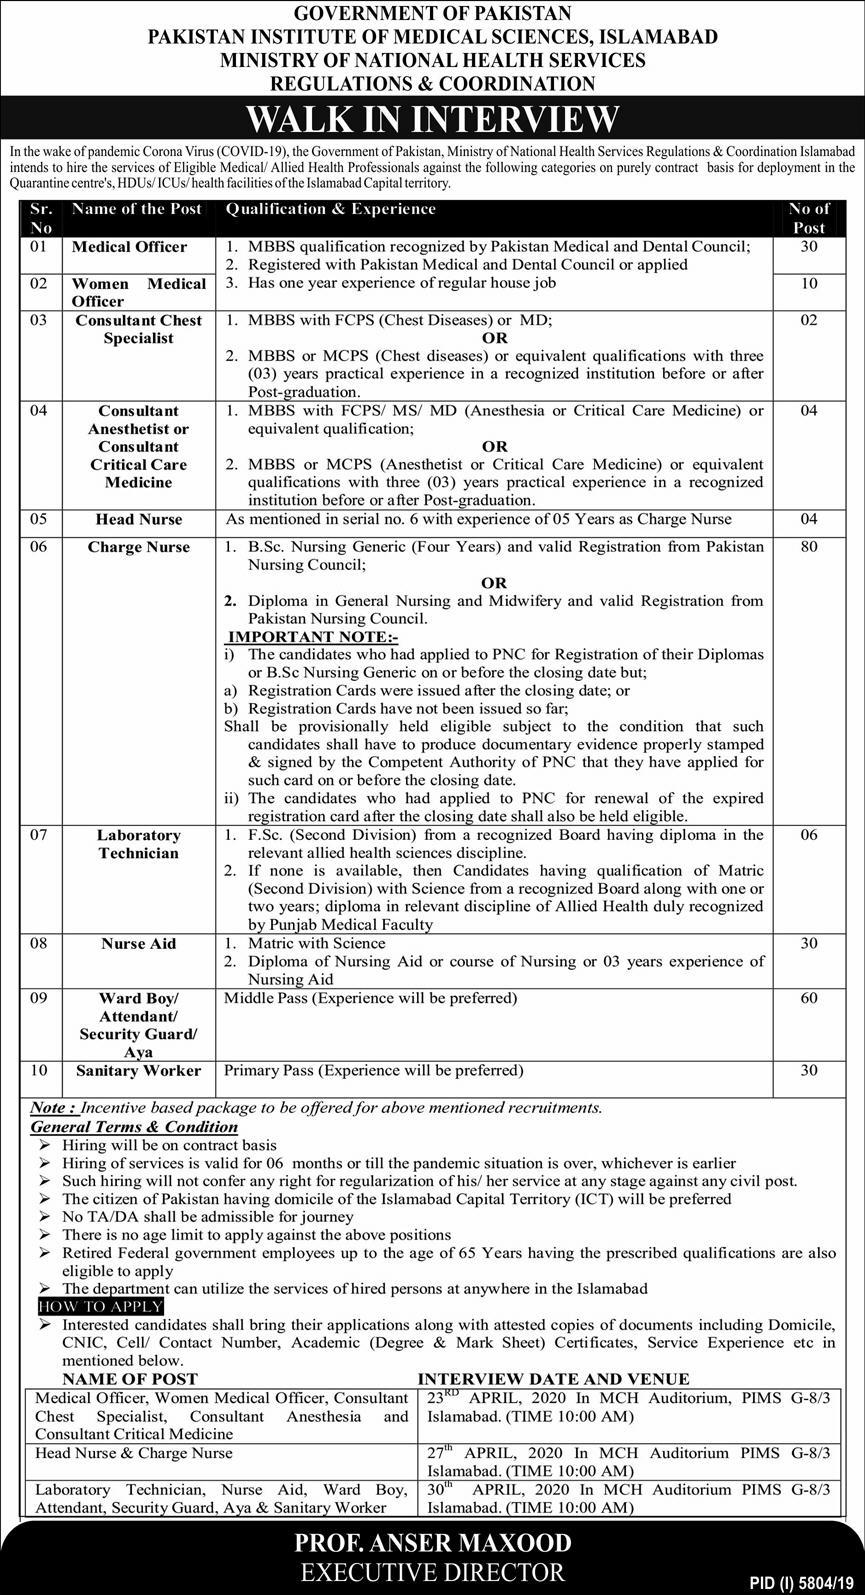 PIMS Islamabad Jobs 2020 Pakistan Institute of Medical Sciences